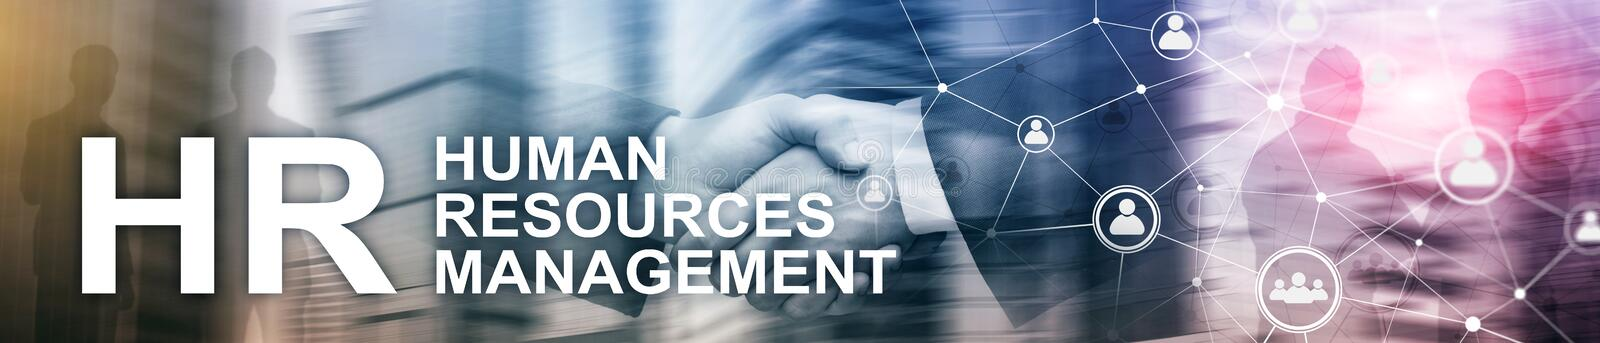 Human resource management, HR, Team Building and recruitment concept on blurred background. Website header banner.  stock photo